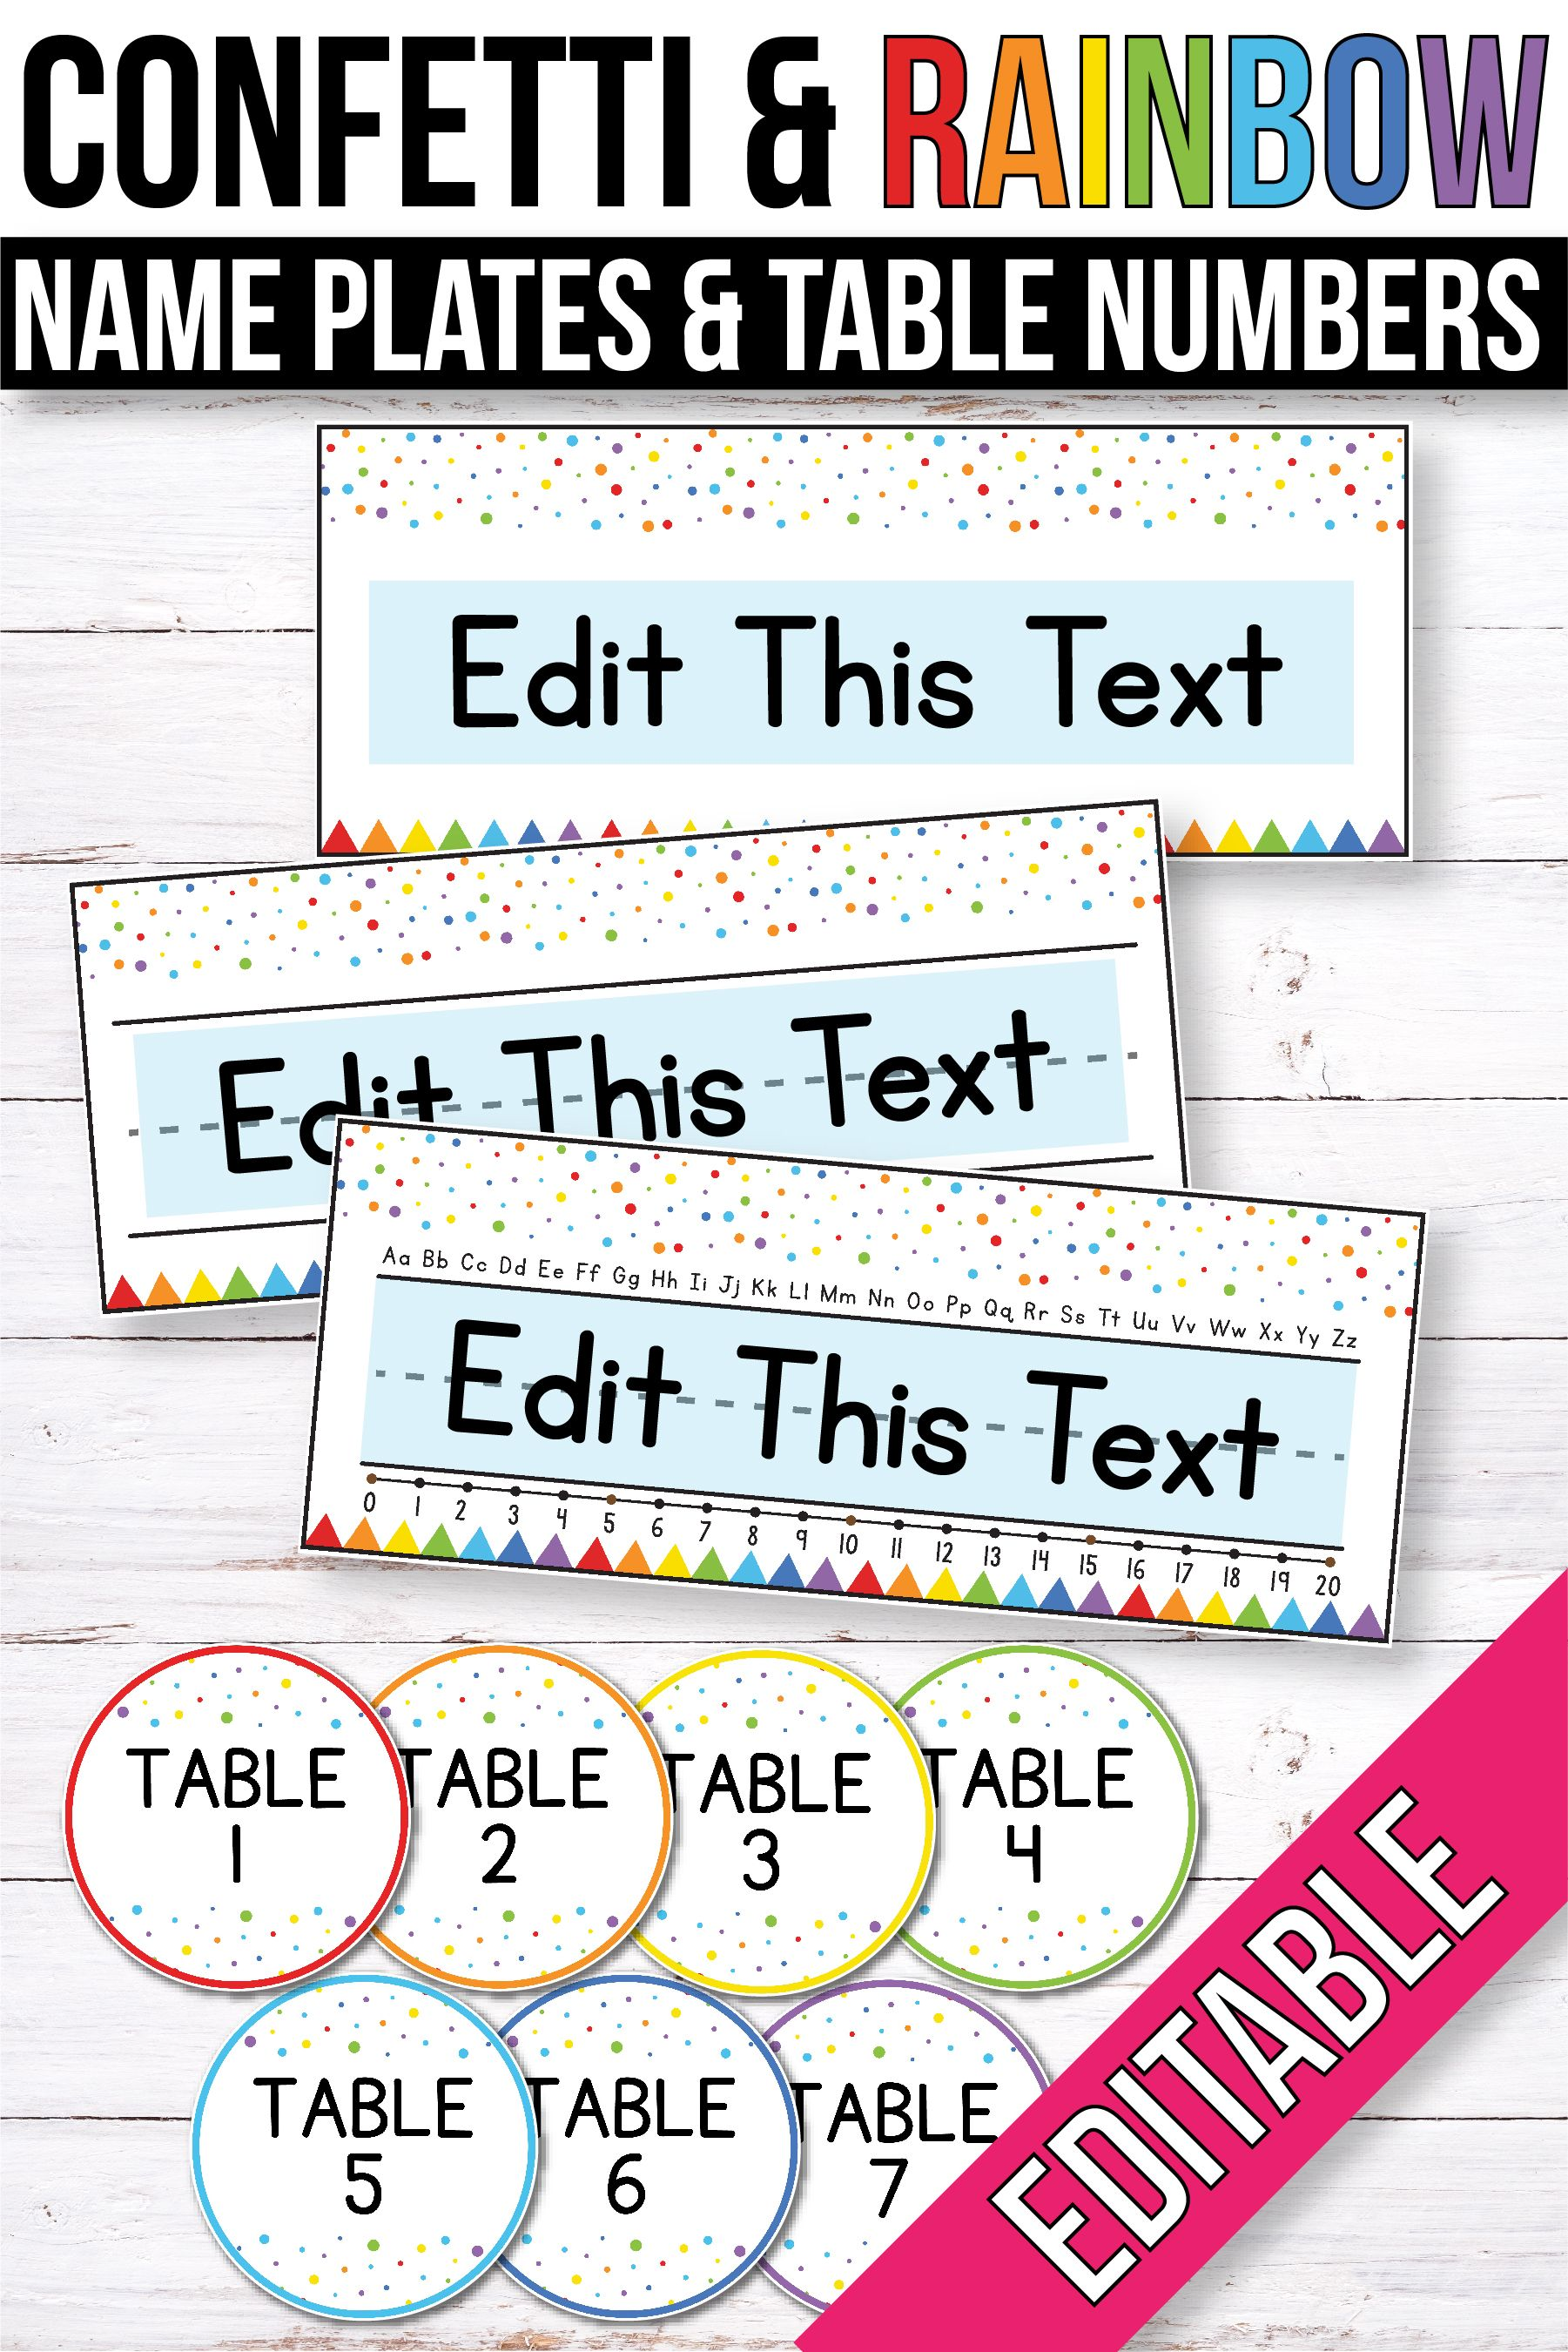 FREE EDITABLE Table Signs and Editable Name Tags - Confetti Classroom Theme #classroomdecor